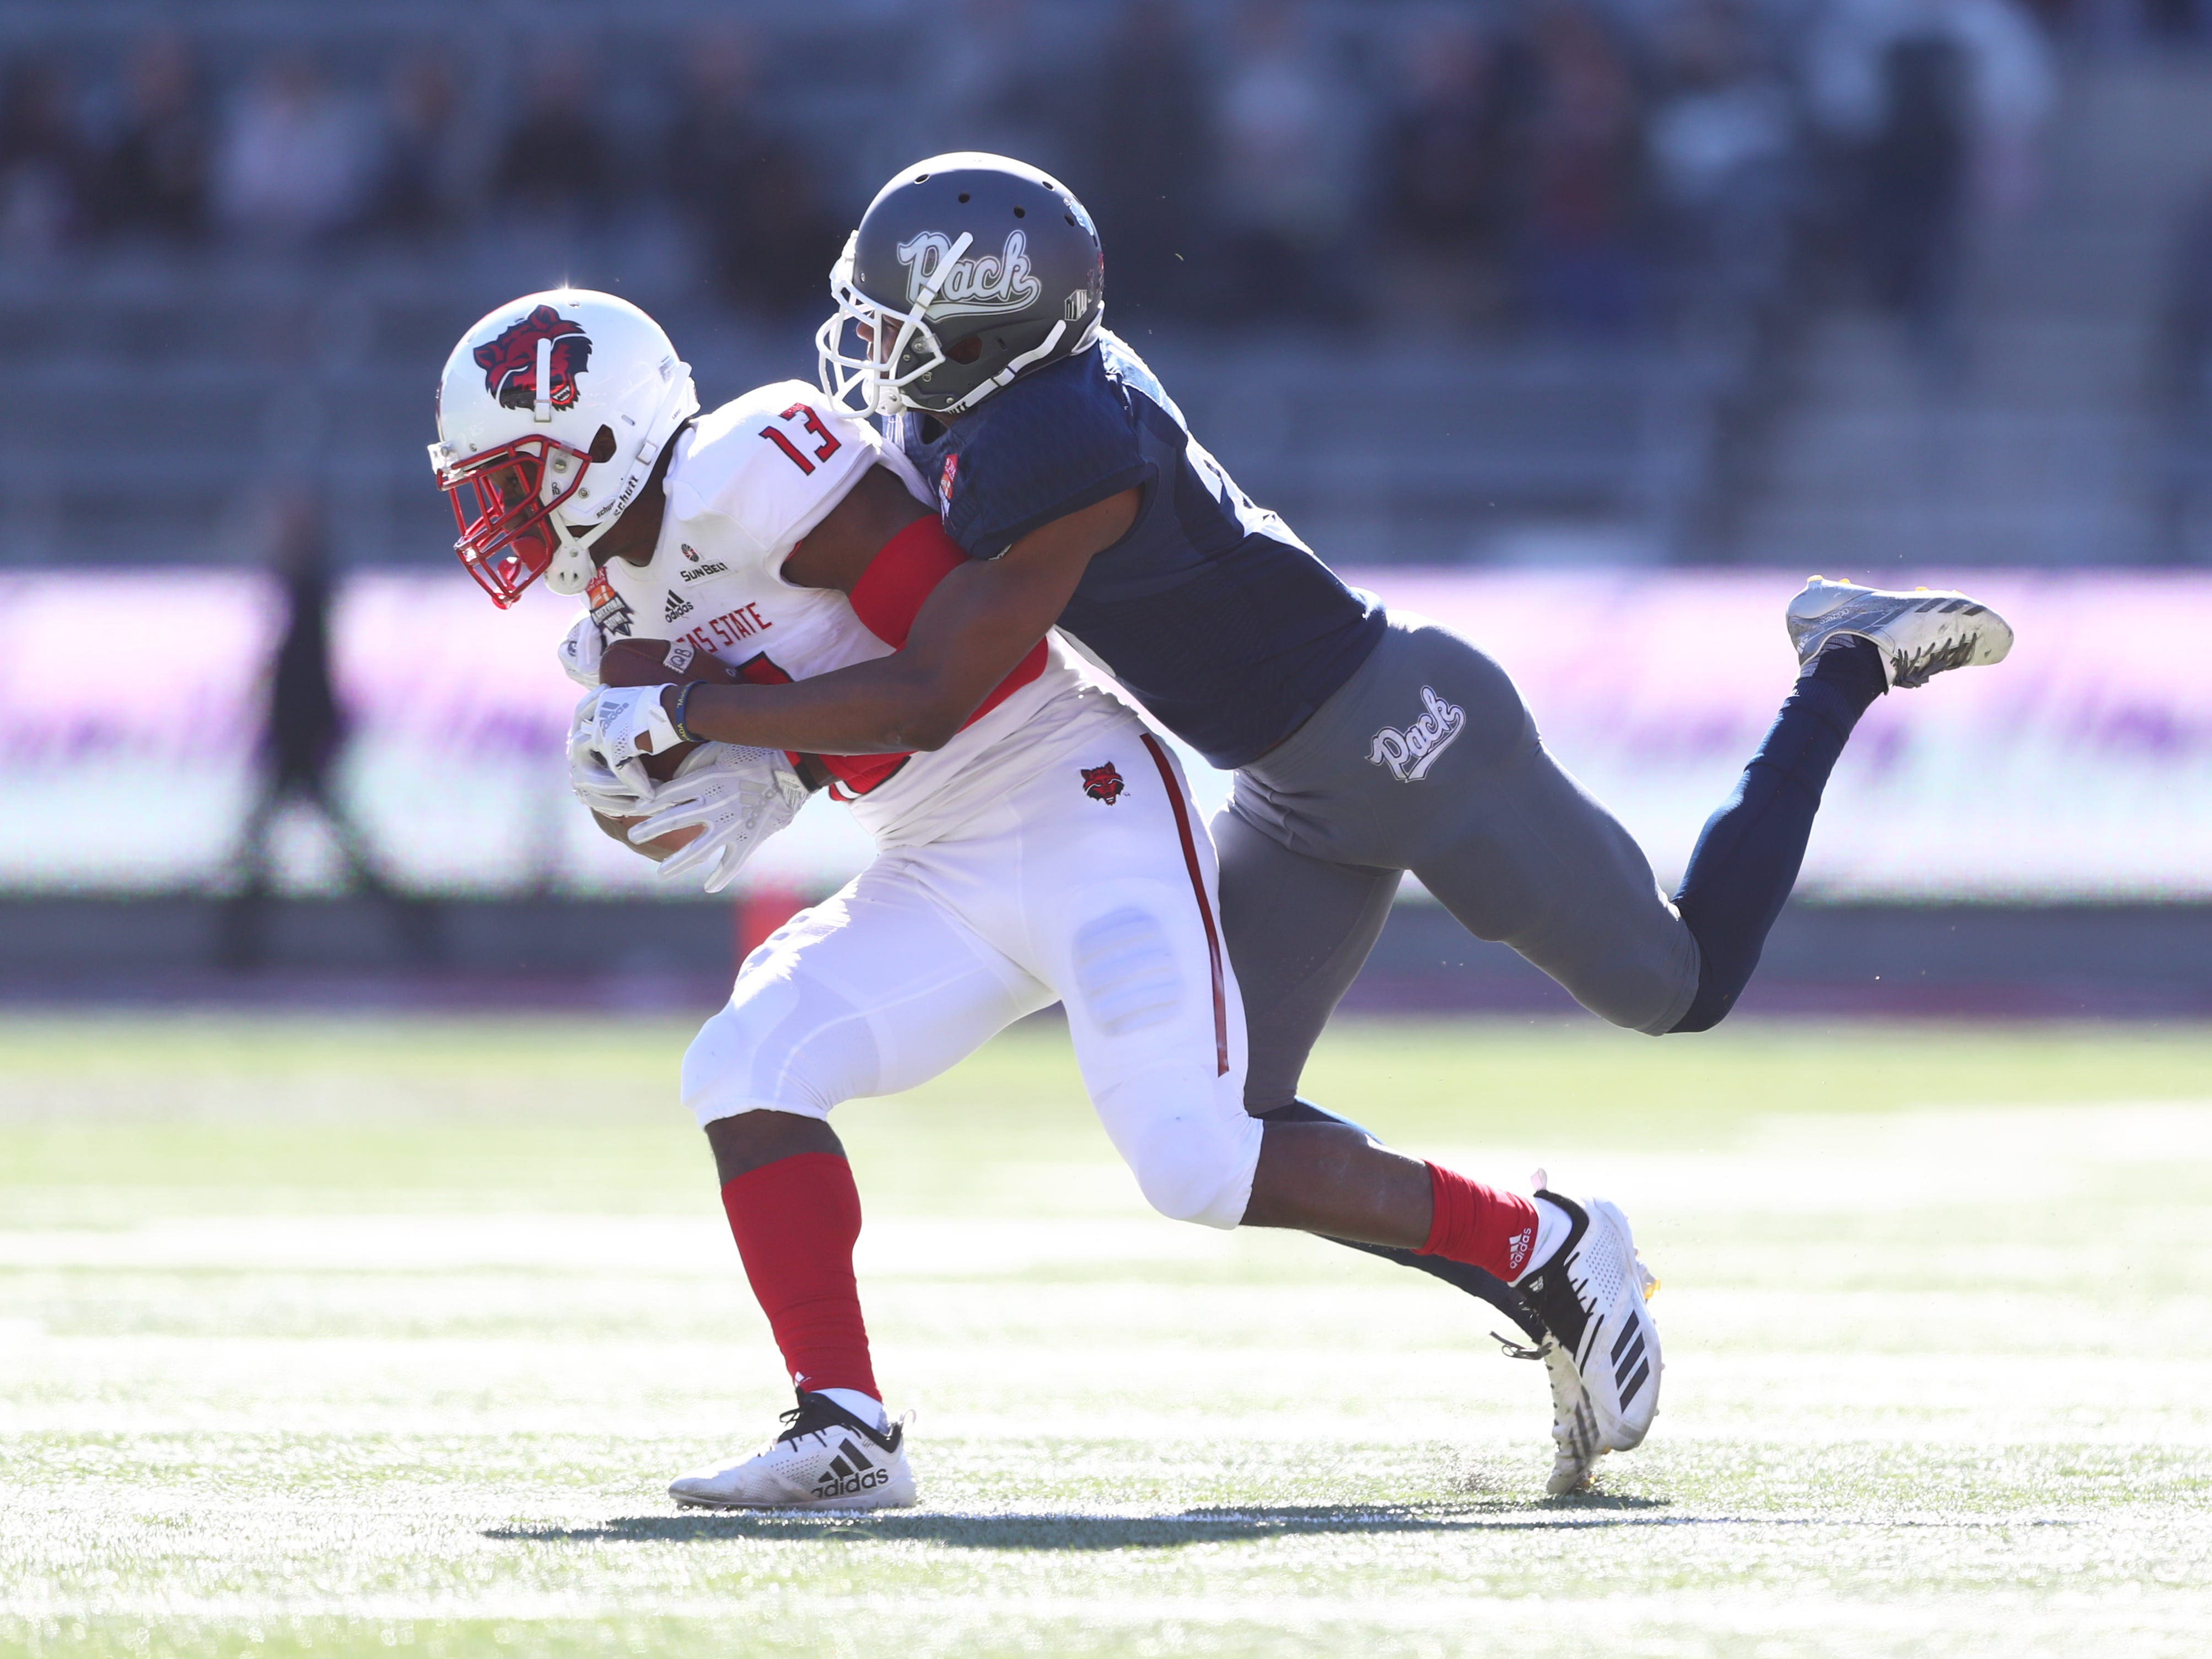 Dec 29, 2018; Tucson, AZ, USA; Arkansas State Red Wolves wide receiver Kirk Merritt (13) is tackled by Nevada Wolf Pack defensive back Daniel Brown (25) in the first half of the 2018 Arizona Bowl at Arizona Stadium.